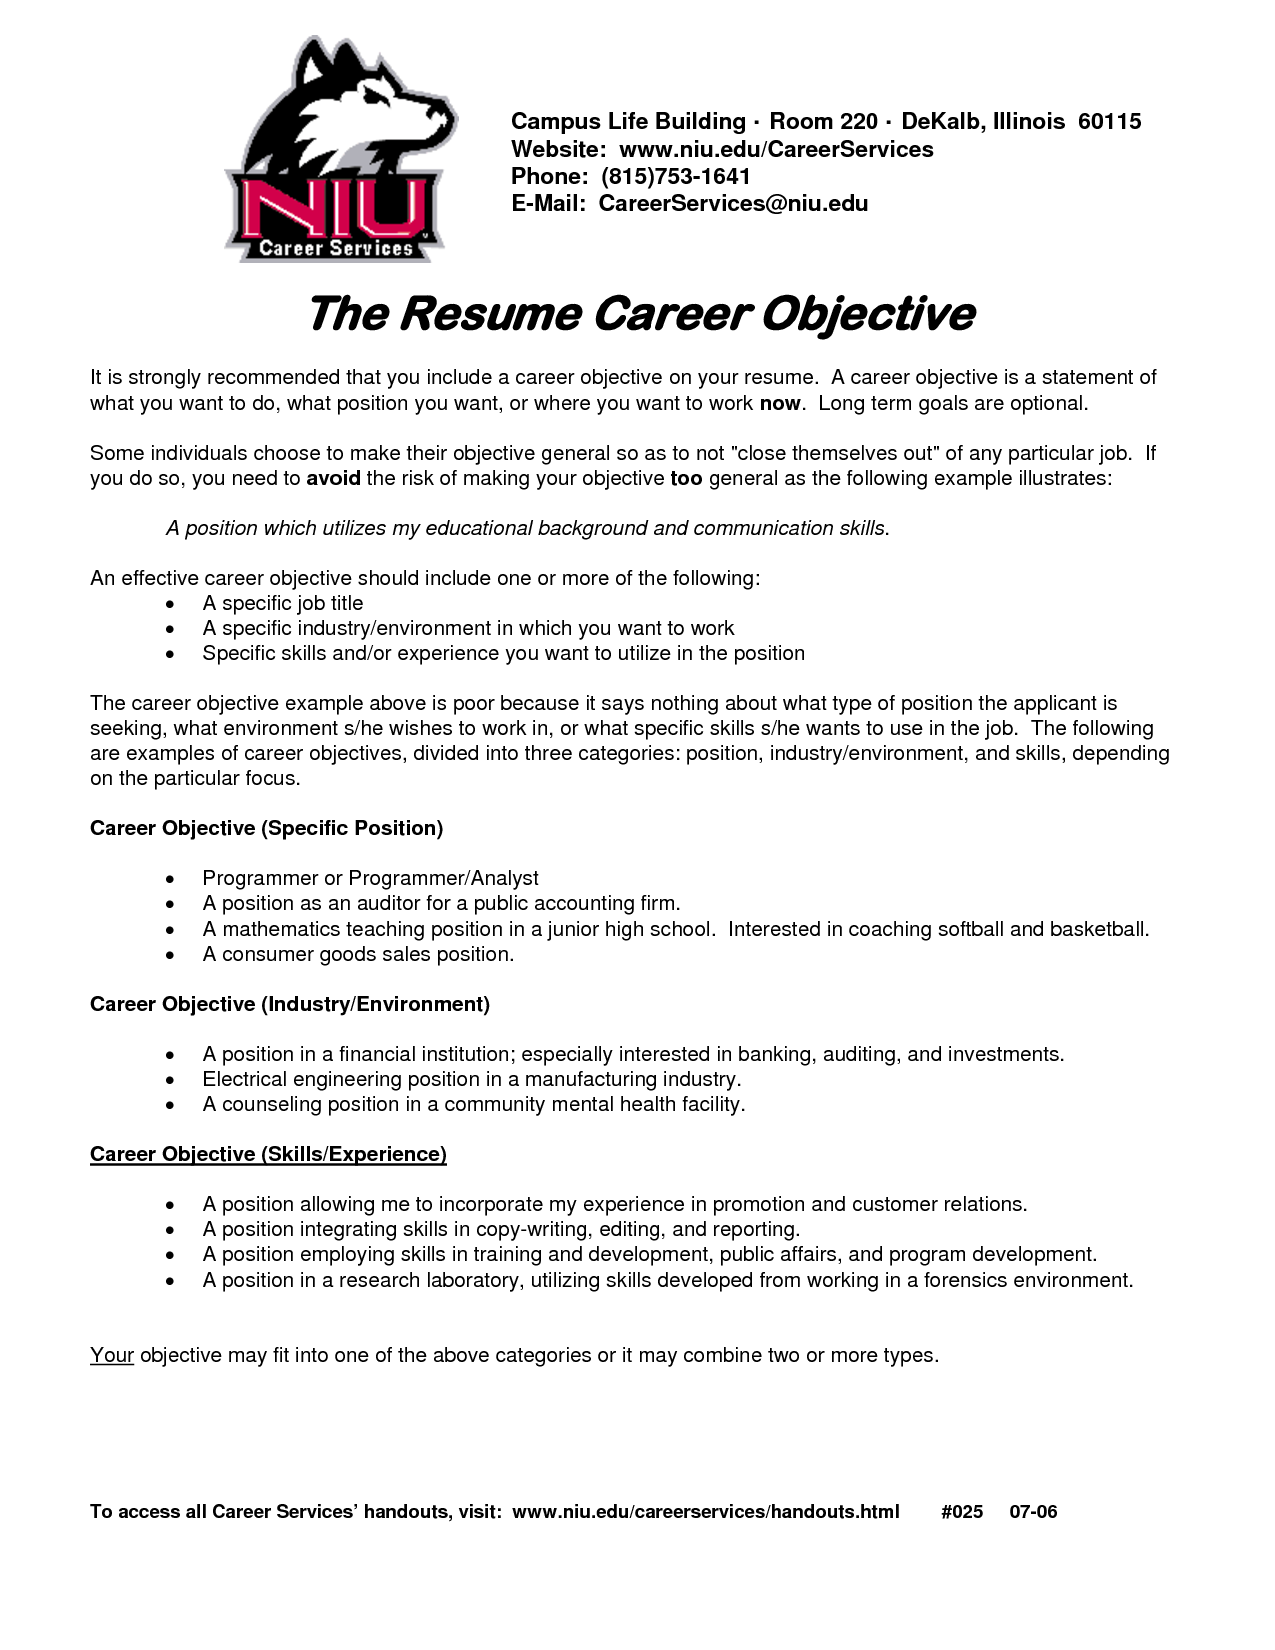 Objectives On A Resume Httpswwwgooglesearchqobjective Resume  Resume